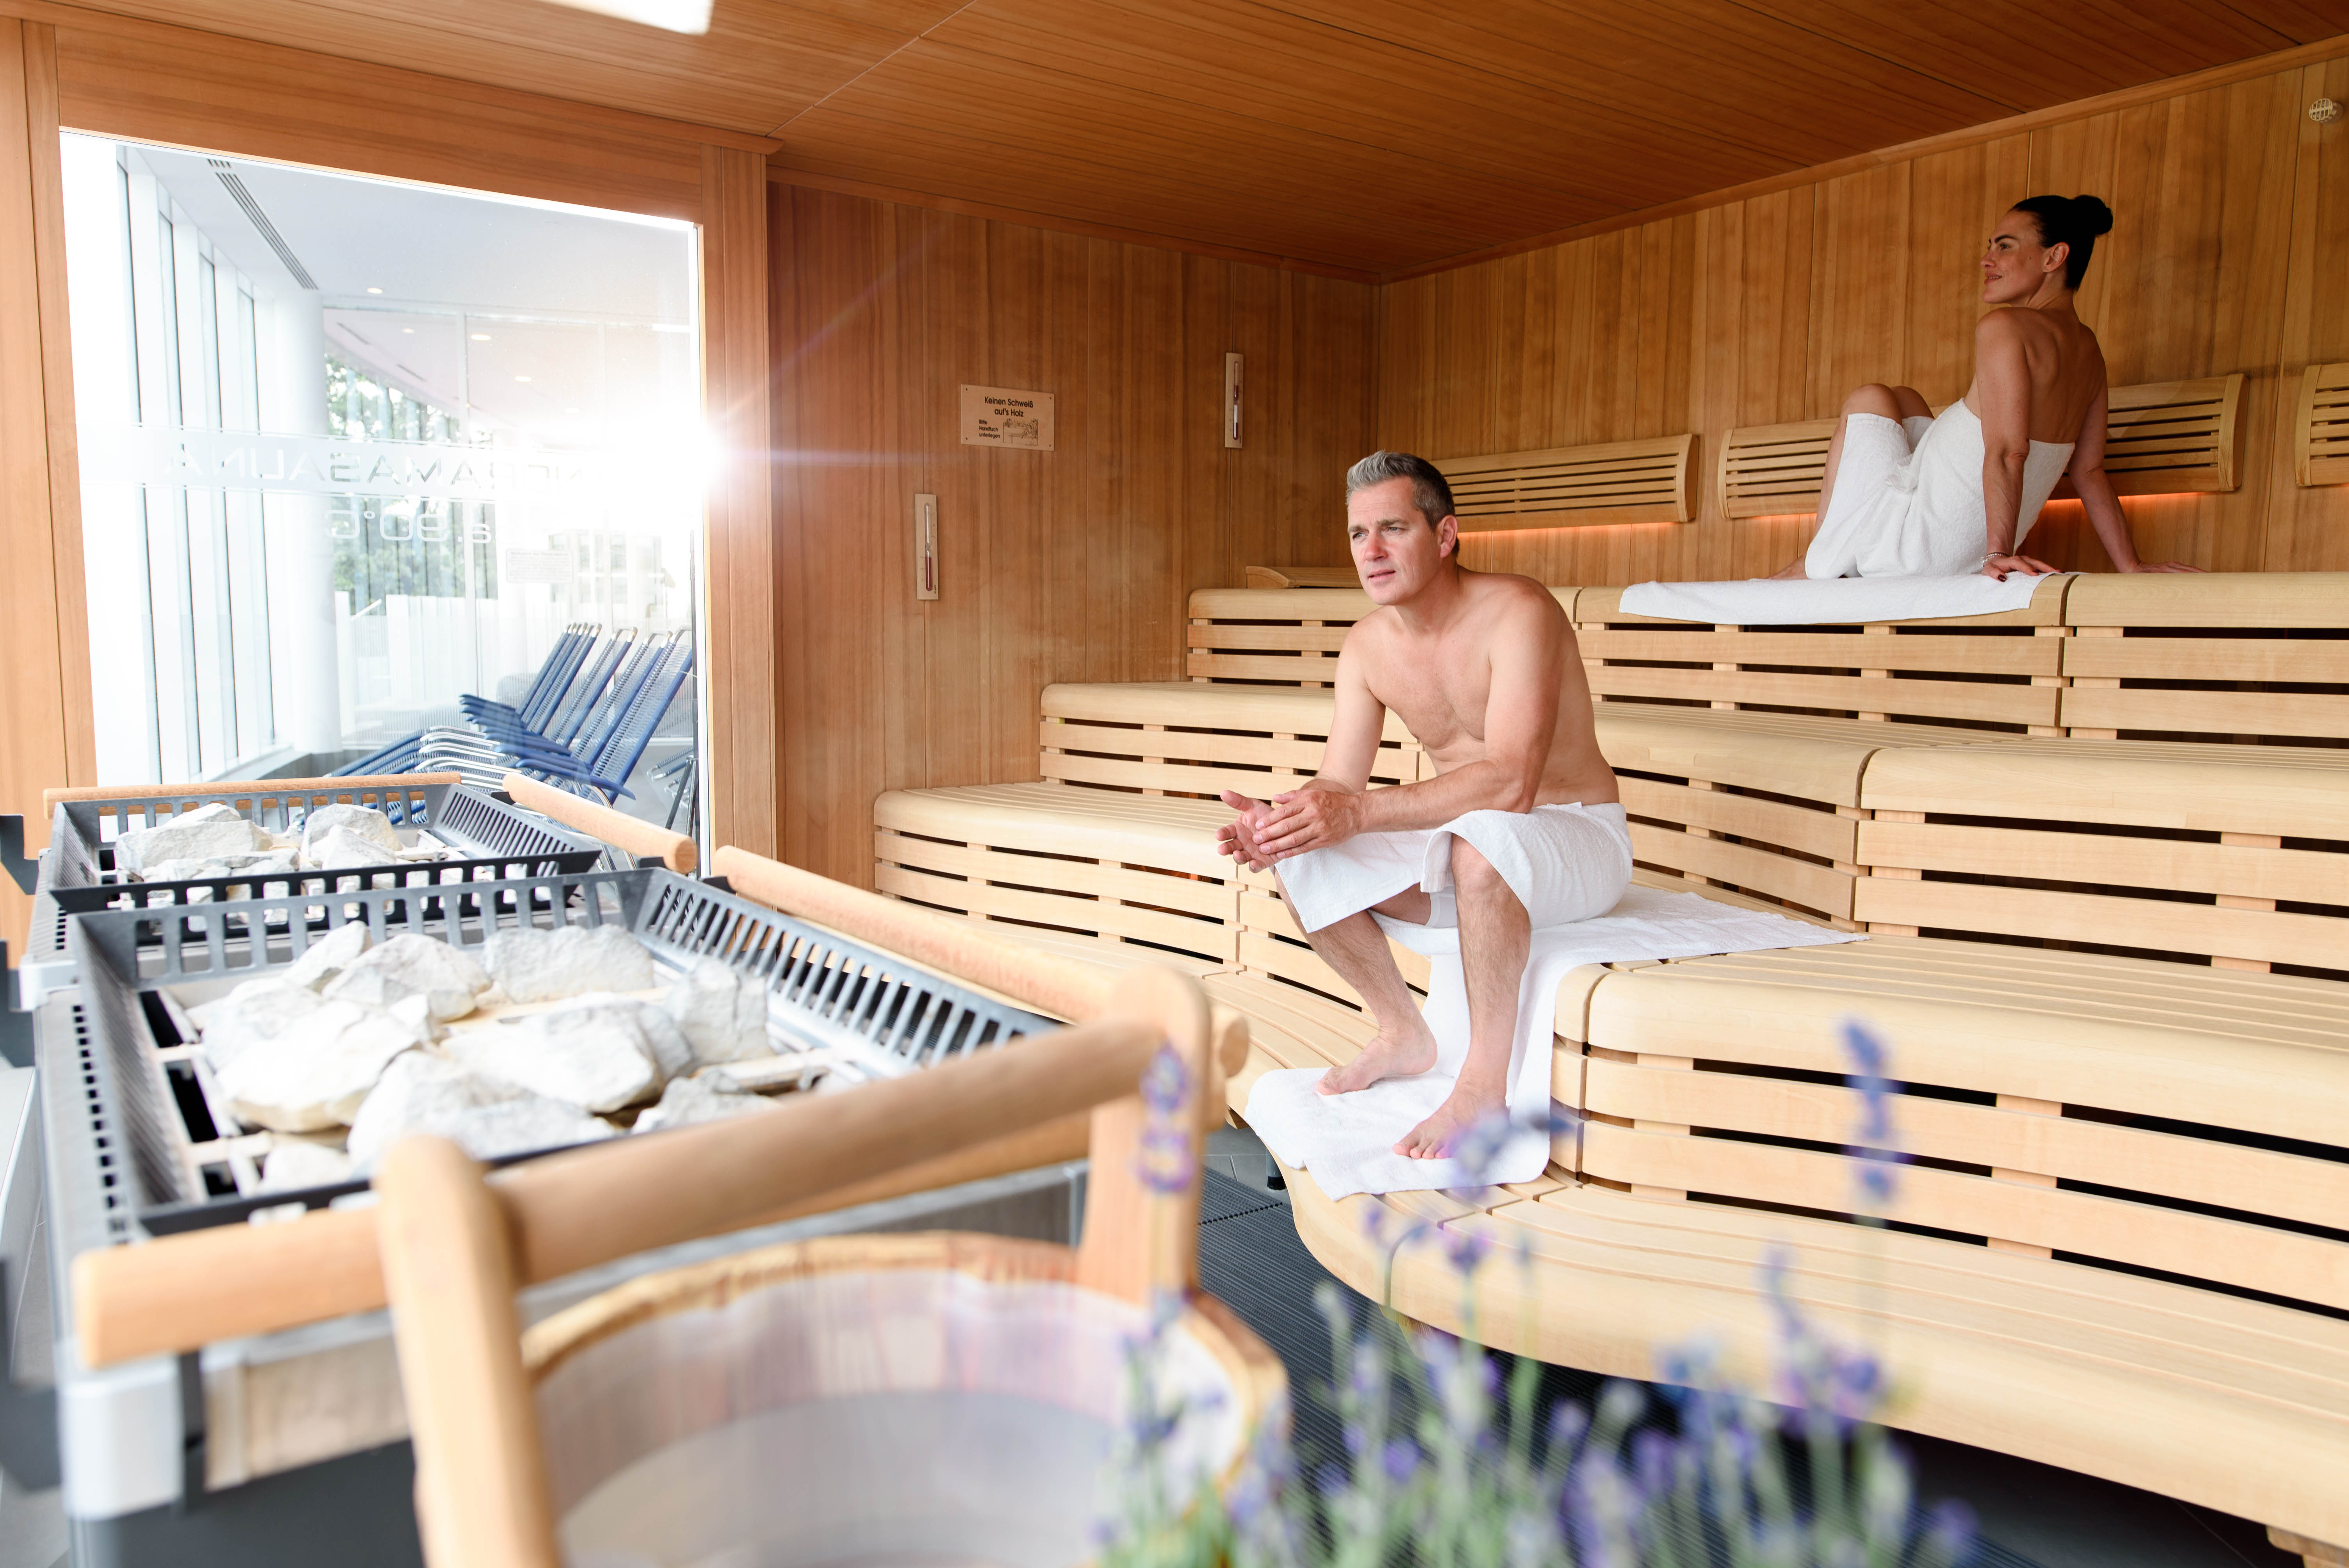 europa therme in bad füssing